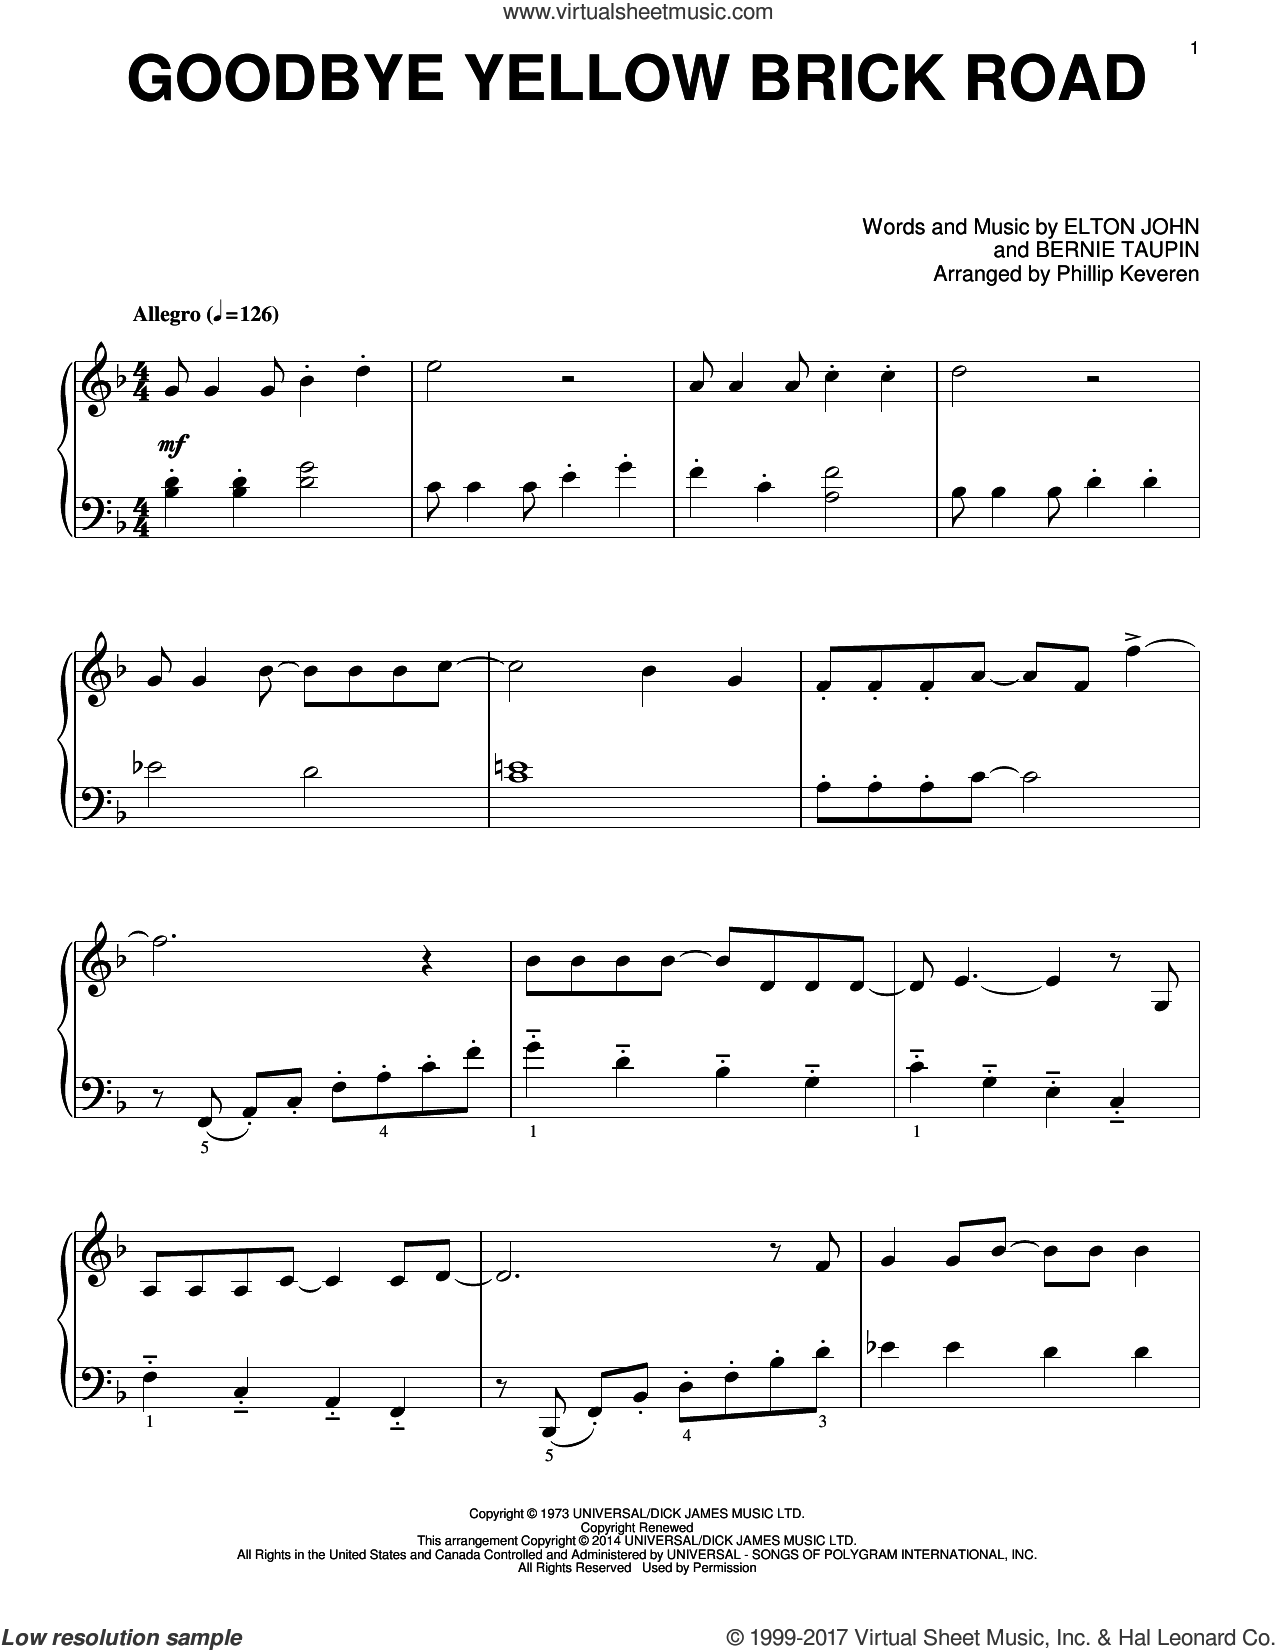 Goodbye Yellow Brick Road sheet music for piano solo by Phillip Keveren, Bernie Taupin and Elton John, intermediate skill level